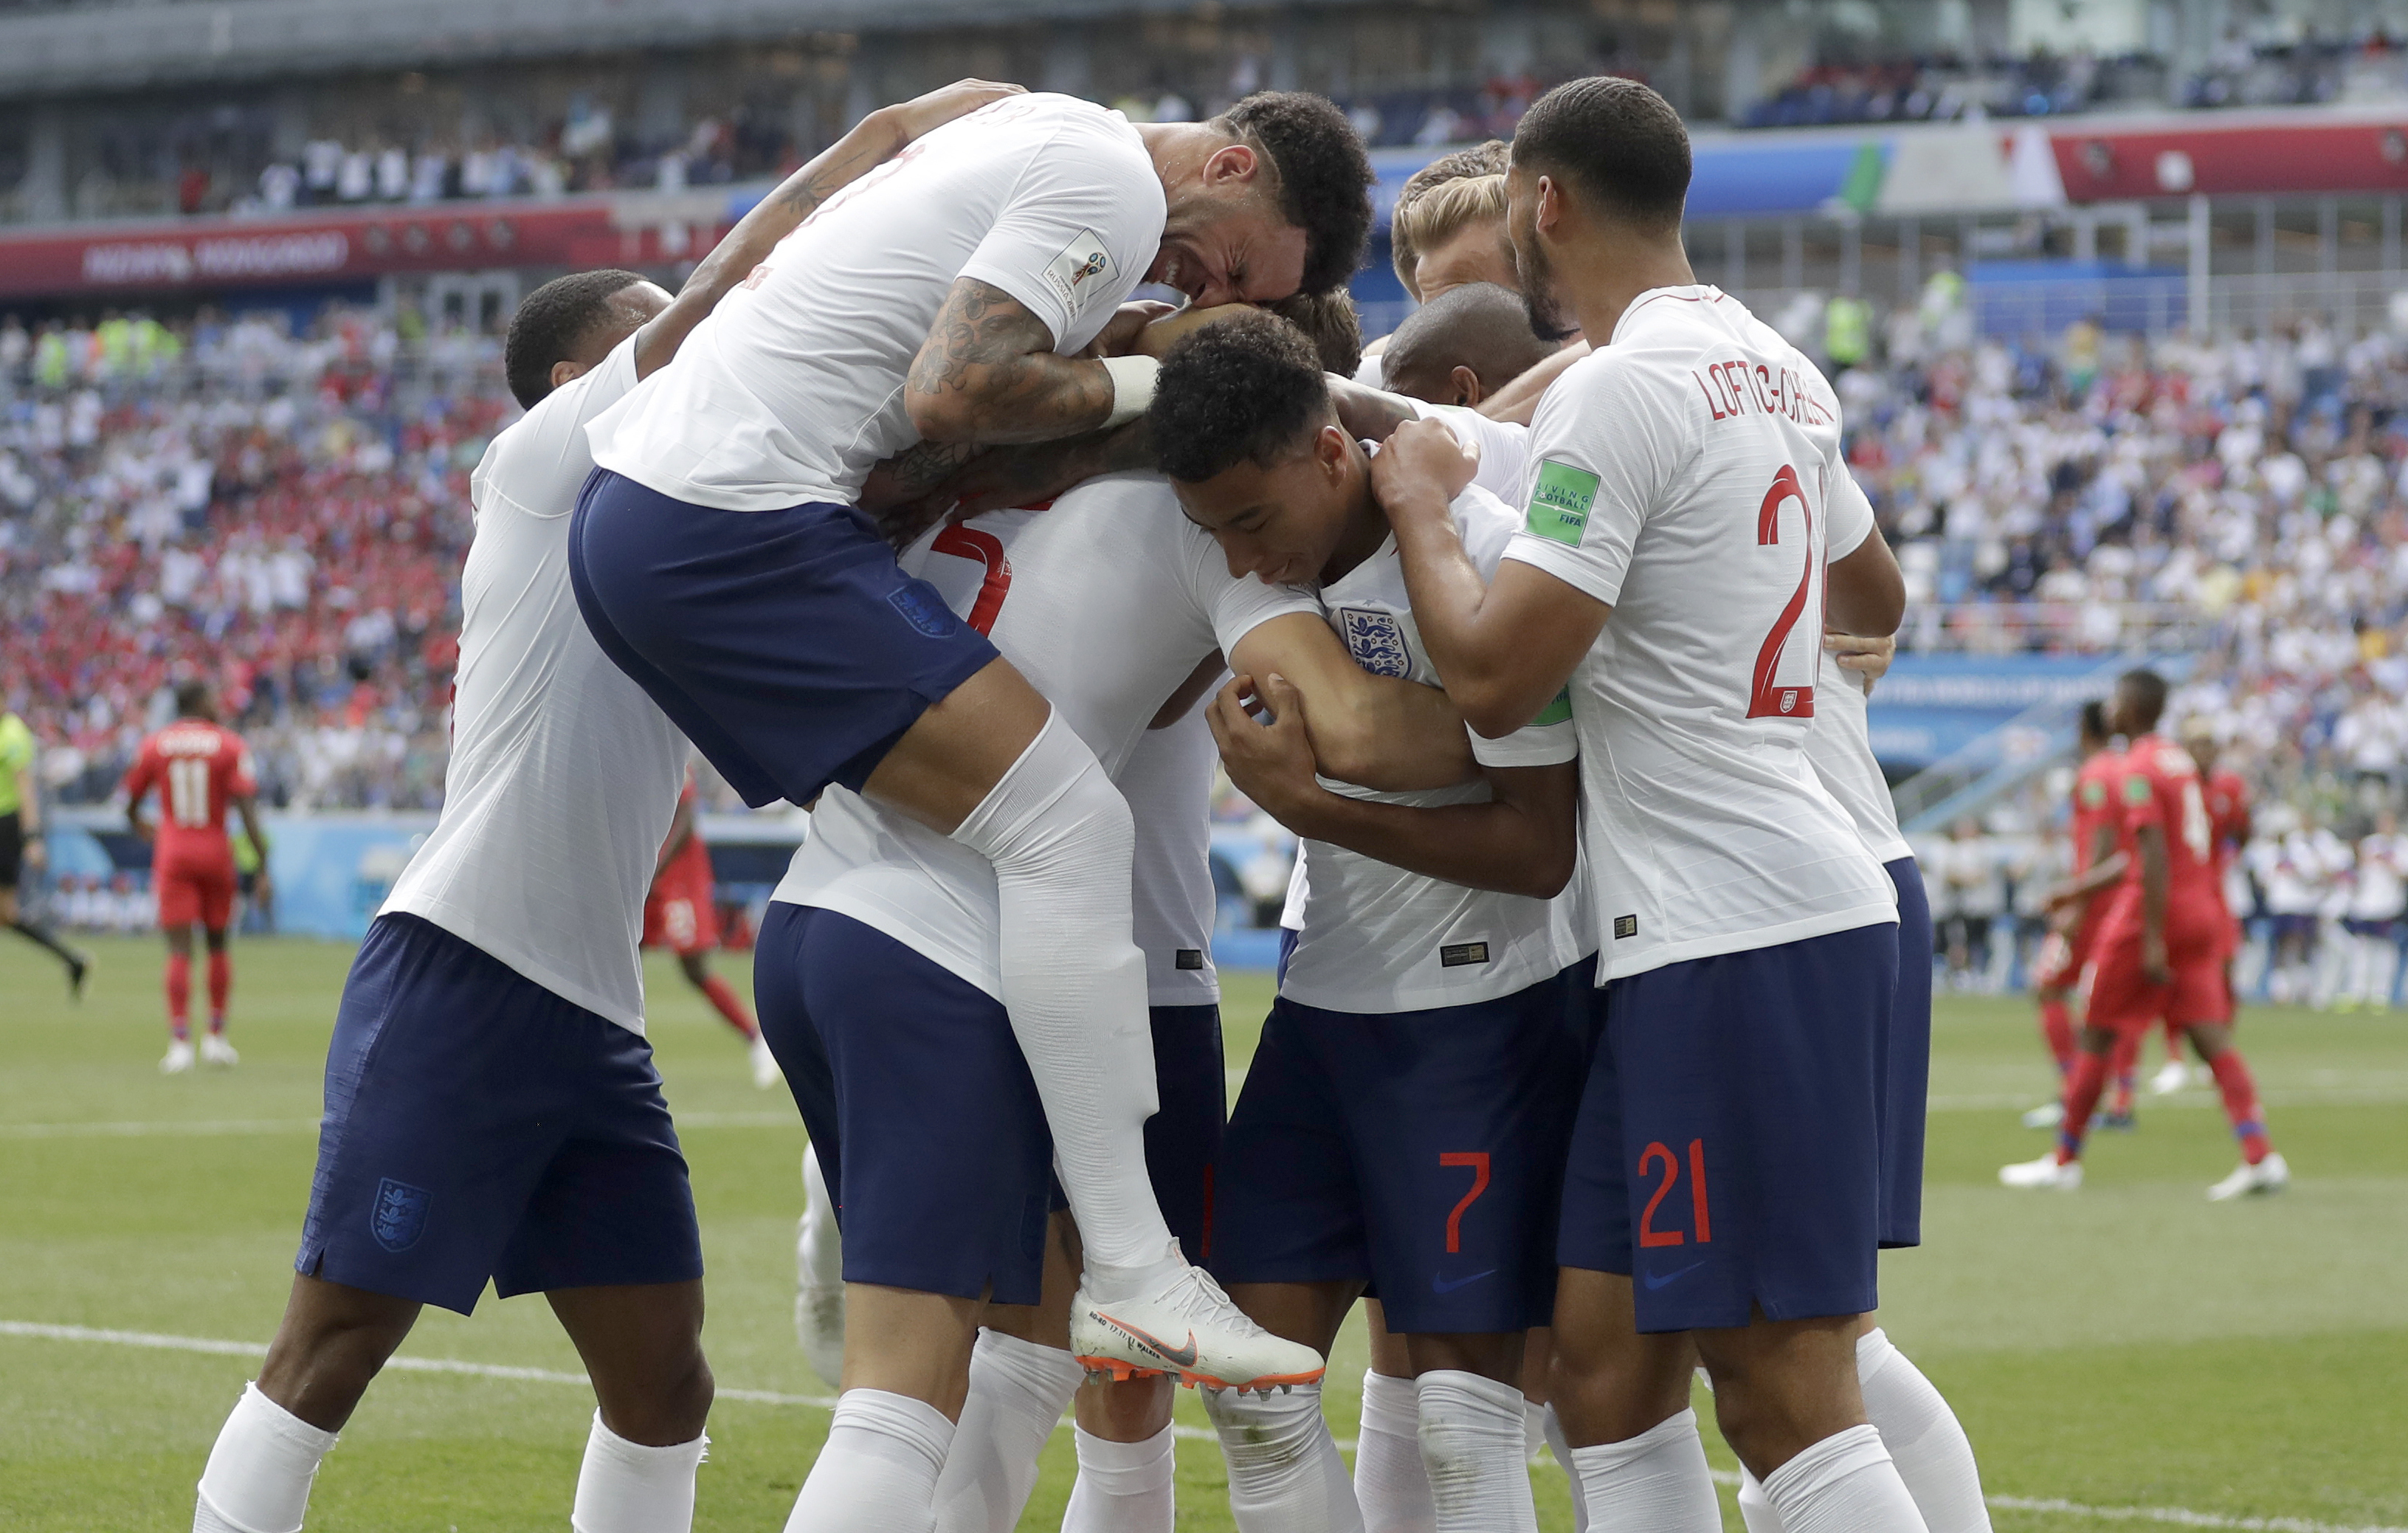 "<div class=""meta image-caption""><div class=""origin-logo origin-image none""><span>none</span></div><span class=""caption-text"">England players run to teammate John Stones after he scored his team's first goal during the group G match against Panama at the Nizhny Novgorod Stadium on Sunday, June 24, 2018. (Matthias Schrader/AP Photo)</span></div>"